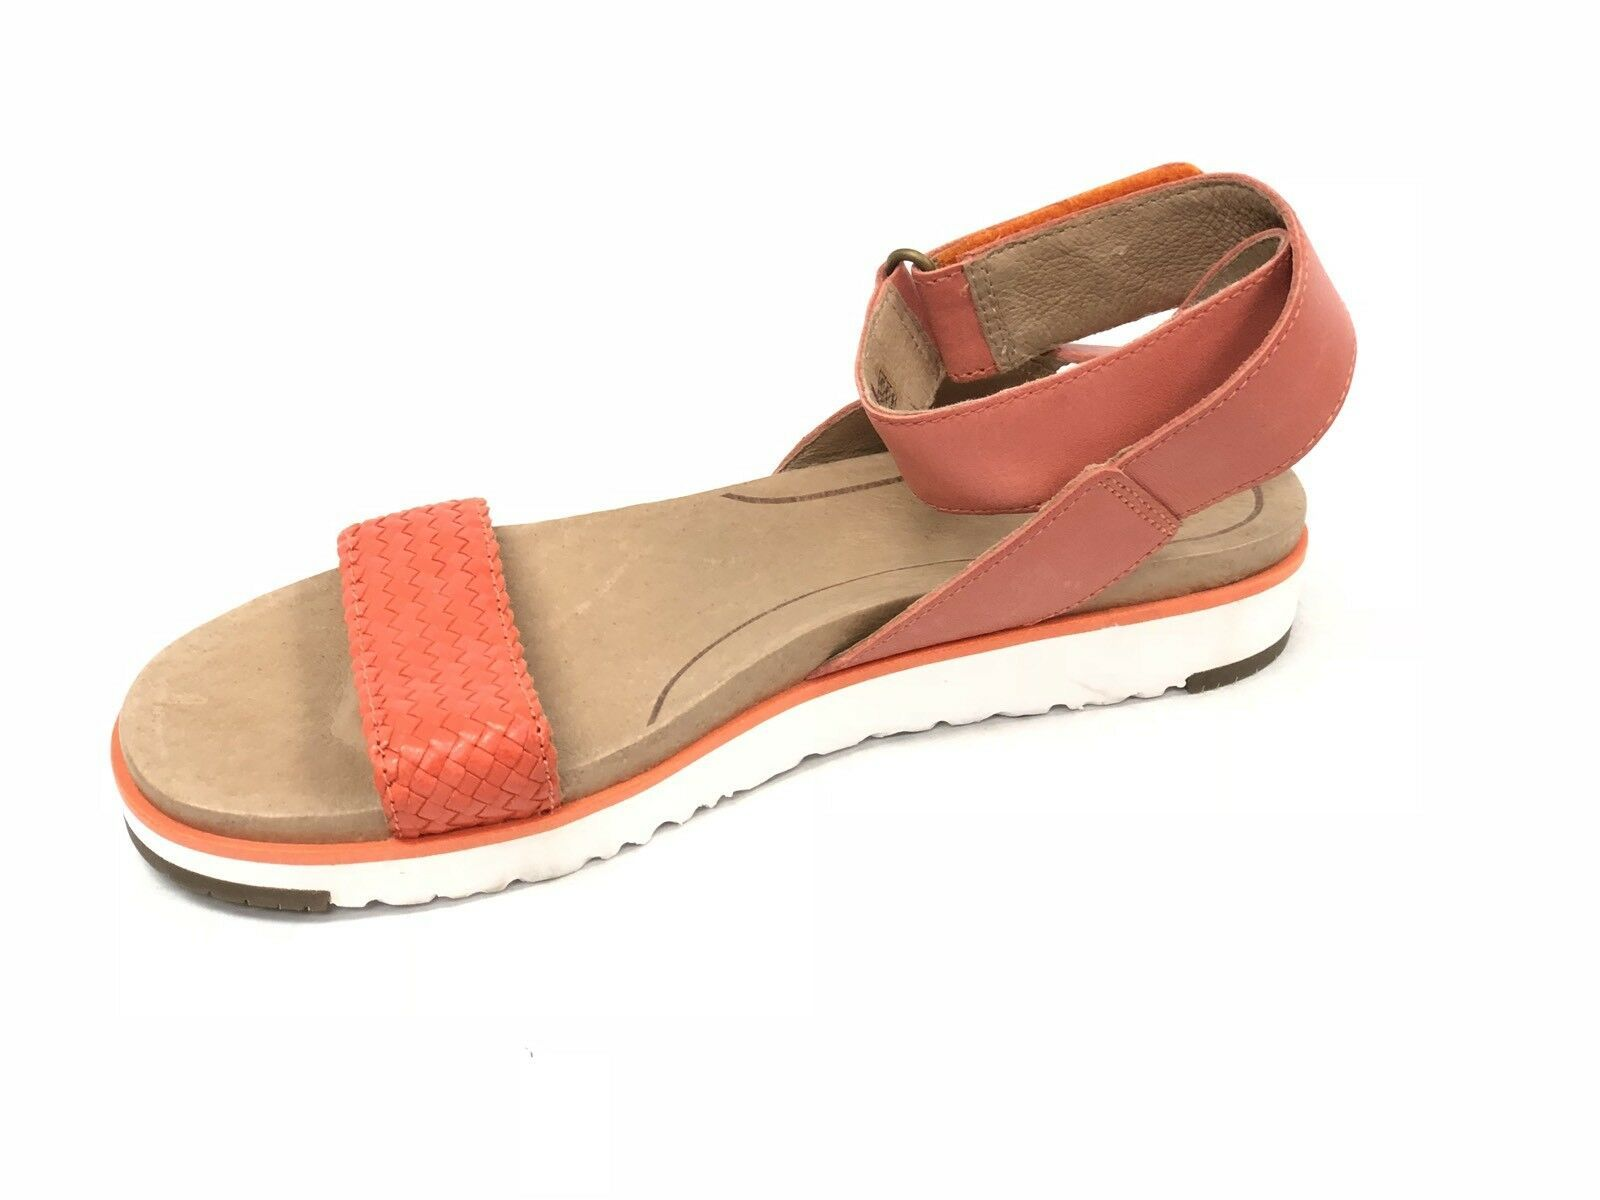 Ugg Australia Laddie Women's Ankle Strap Fire Opal Orange Sandal 1015669 Shoes